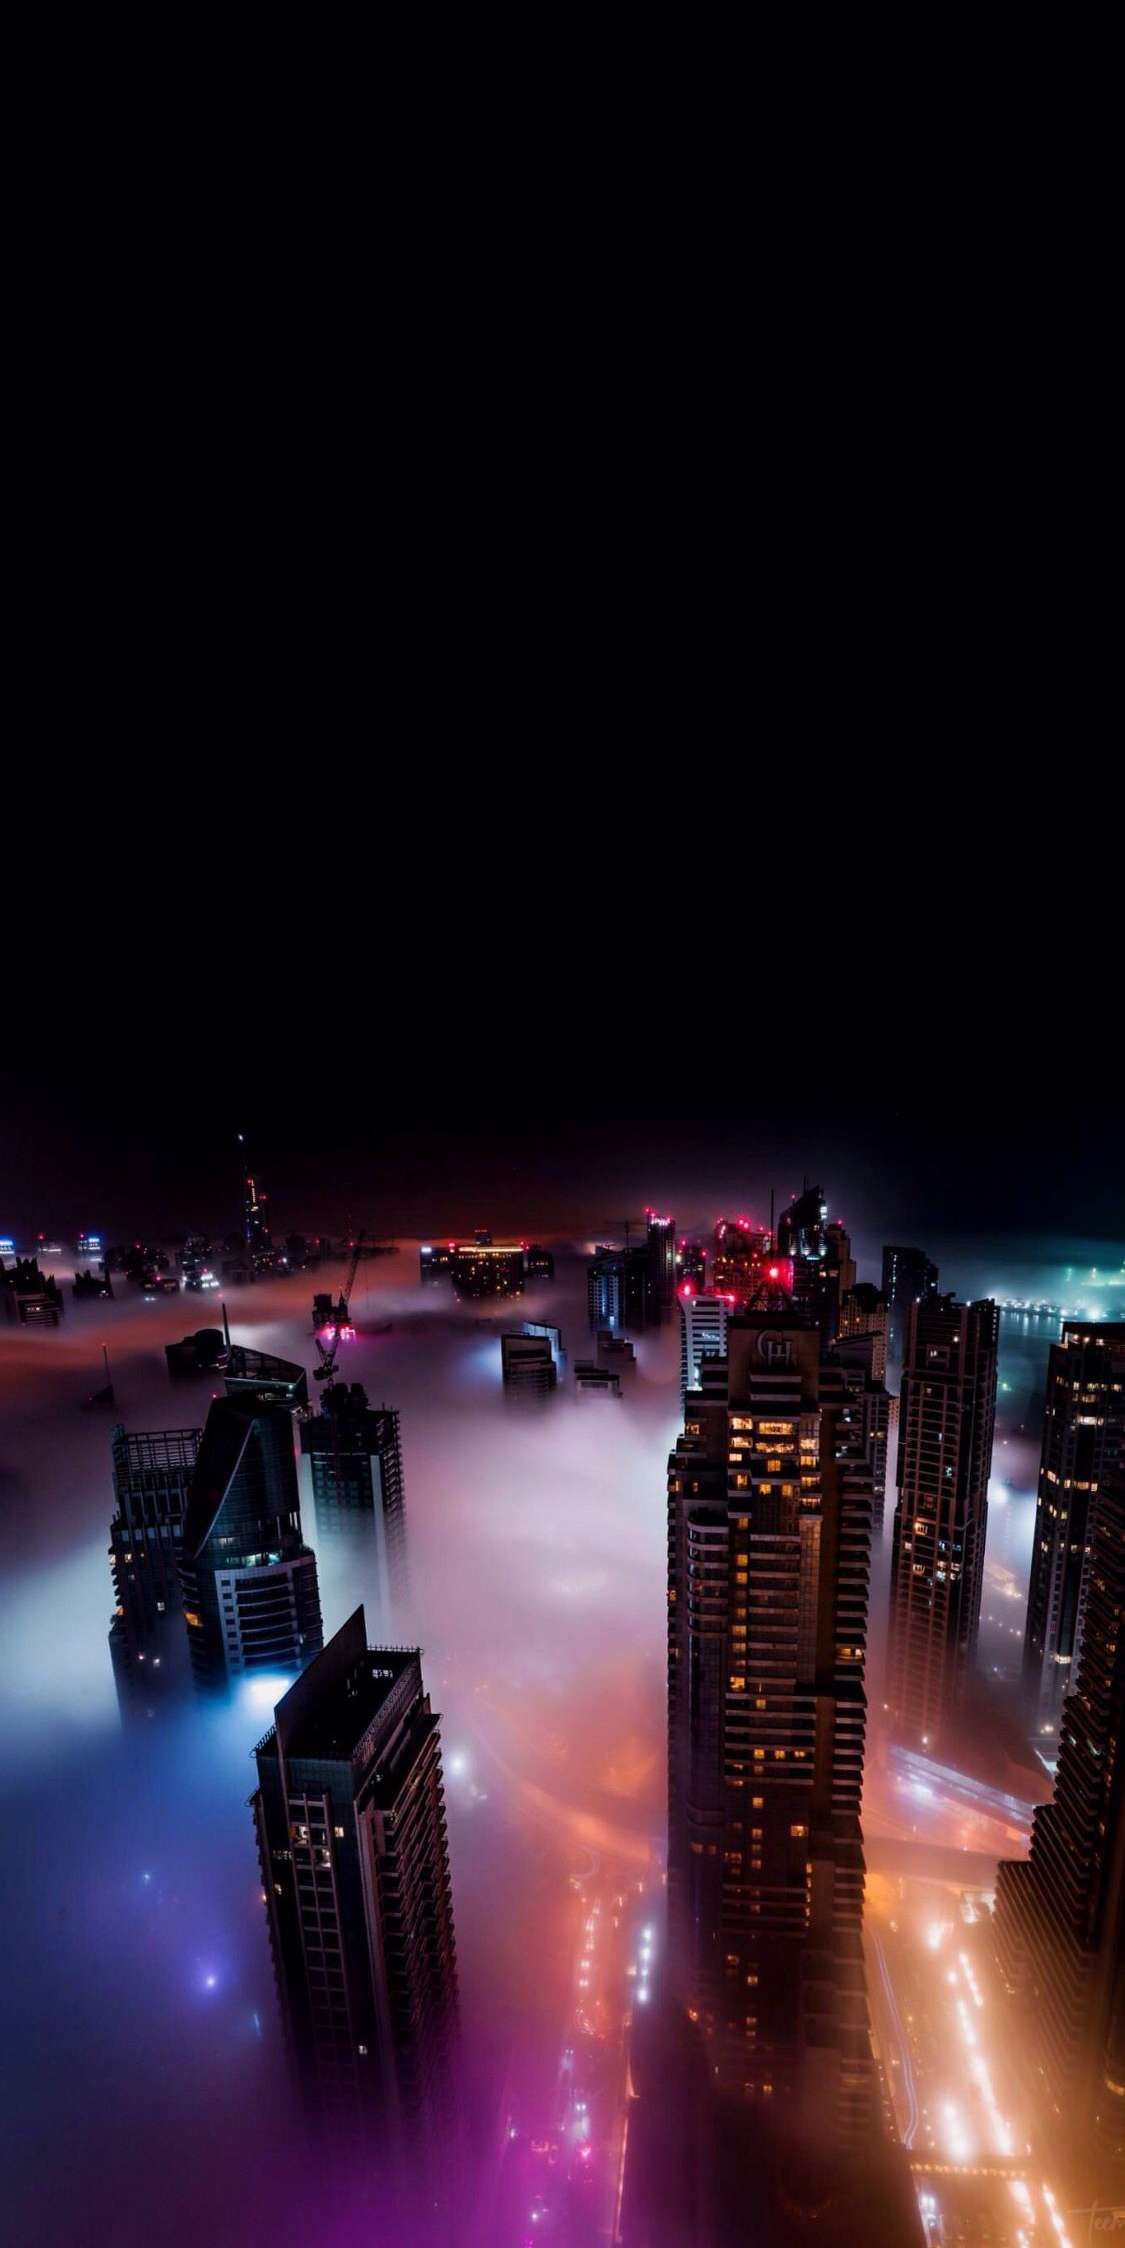 City At Night Iphone Wallpaper City Wallpaper Night City Landscape Photography